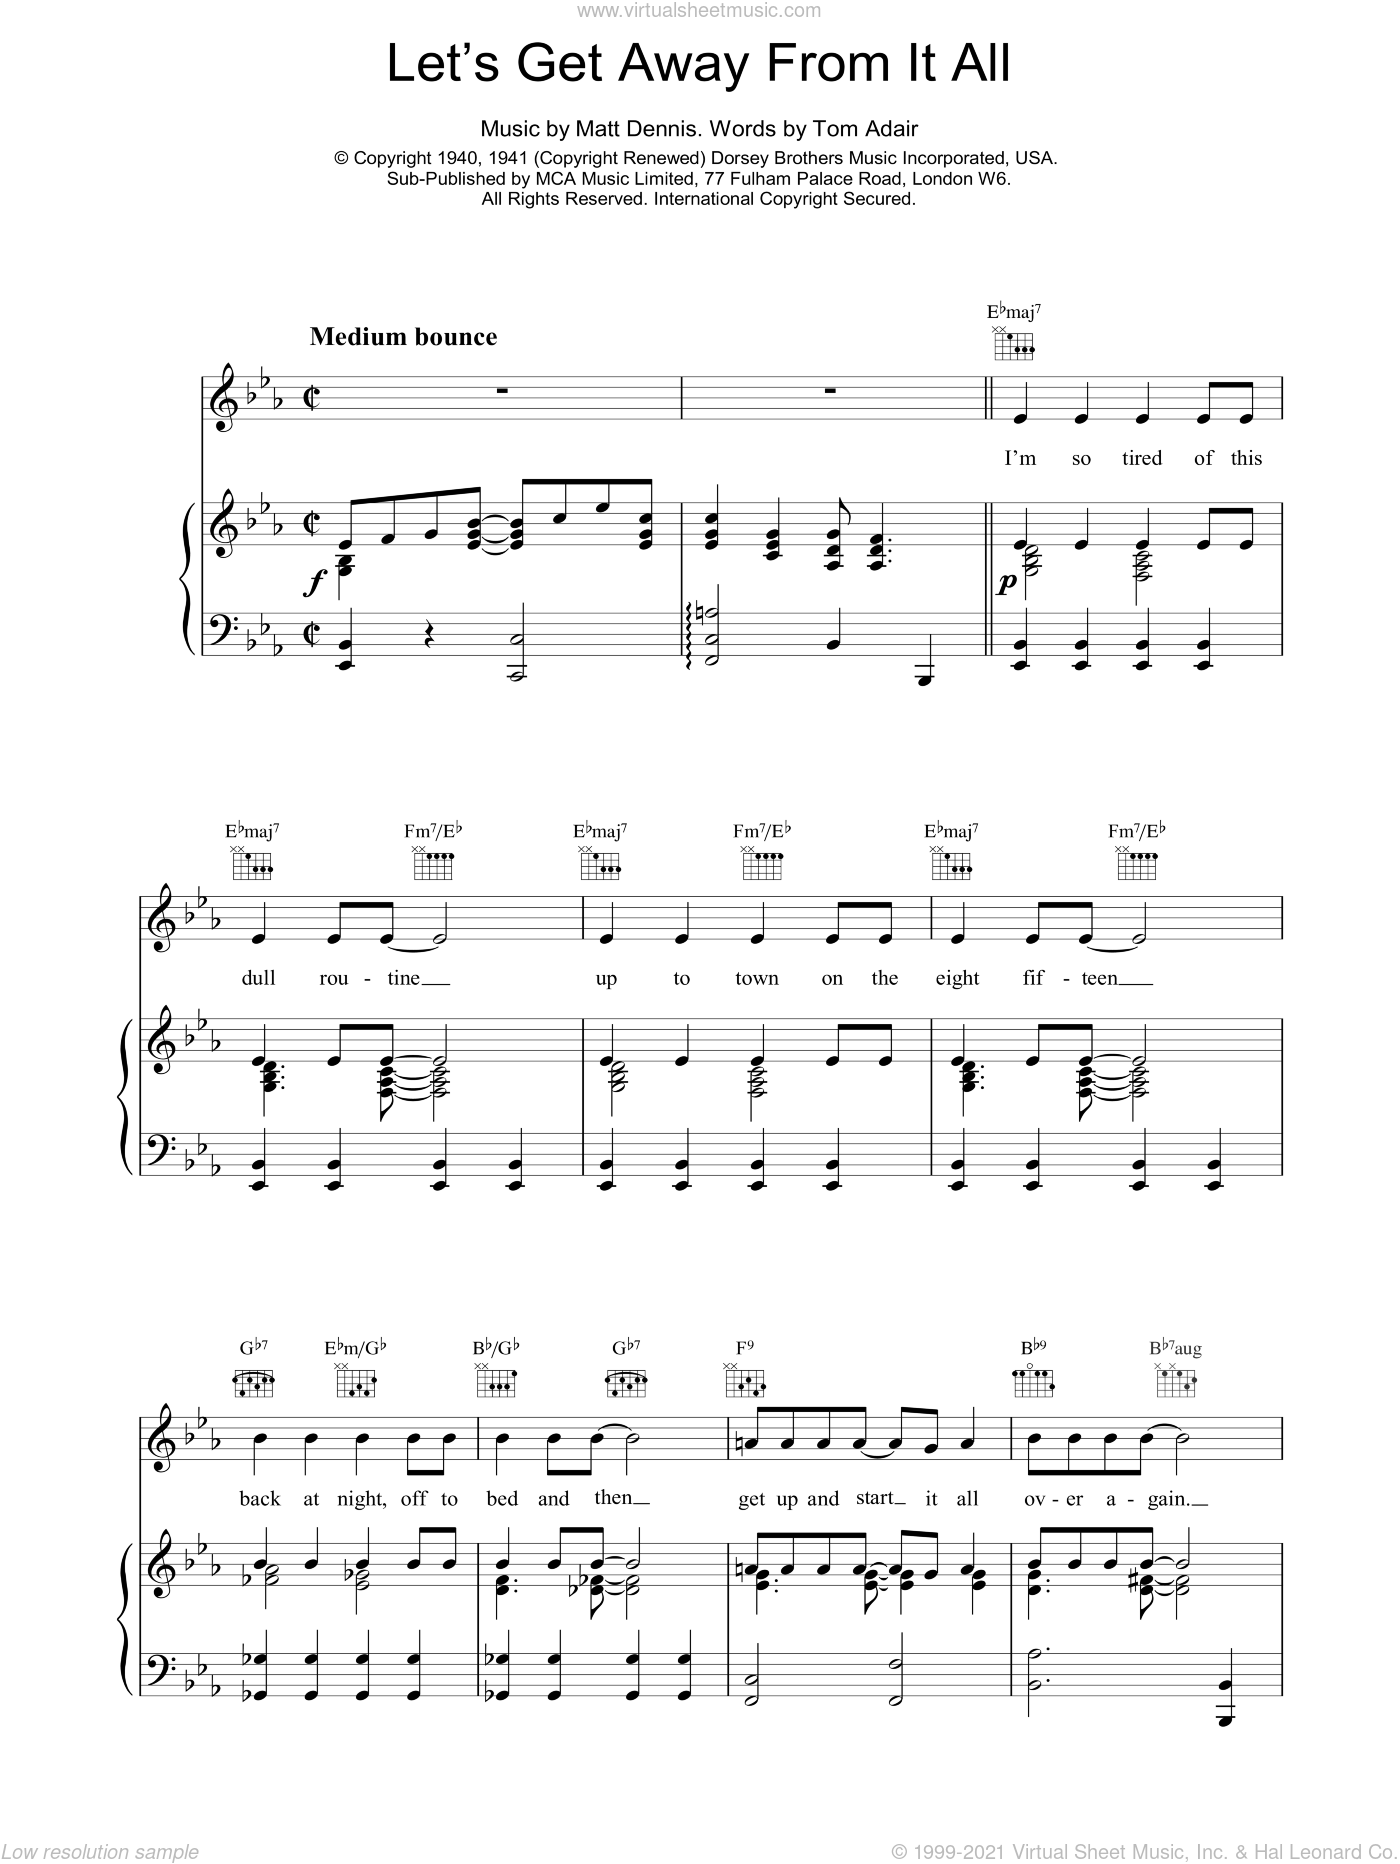 Let's Get Away From It All sheet music for voice, piano or guitar by Tom Adair